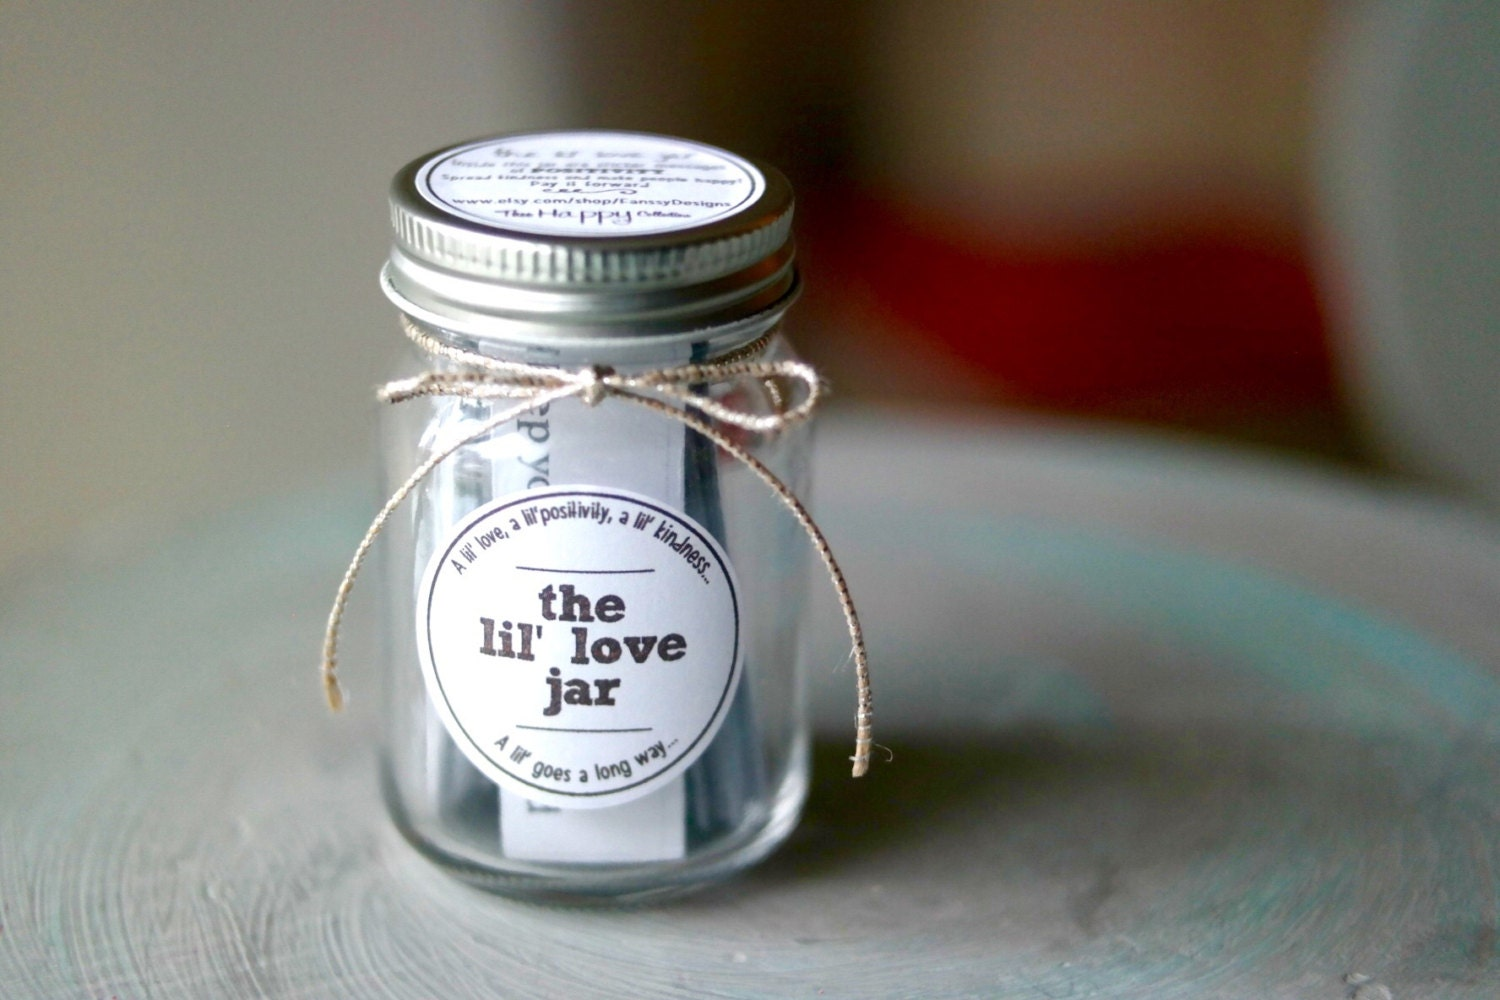 Quotes Jar The Lil' Love Jar With Sticker Messages Quotes Words